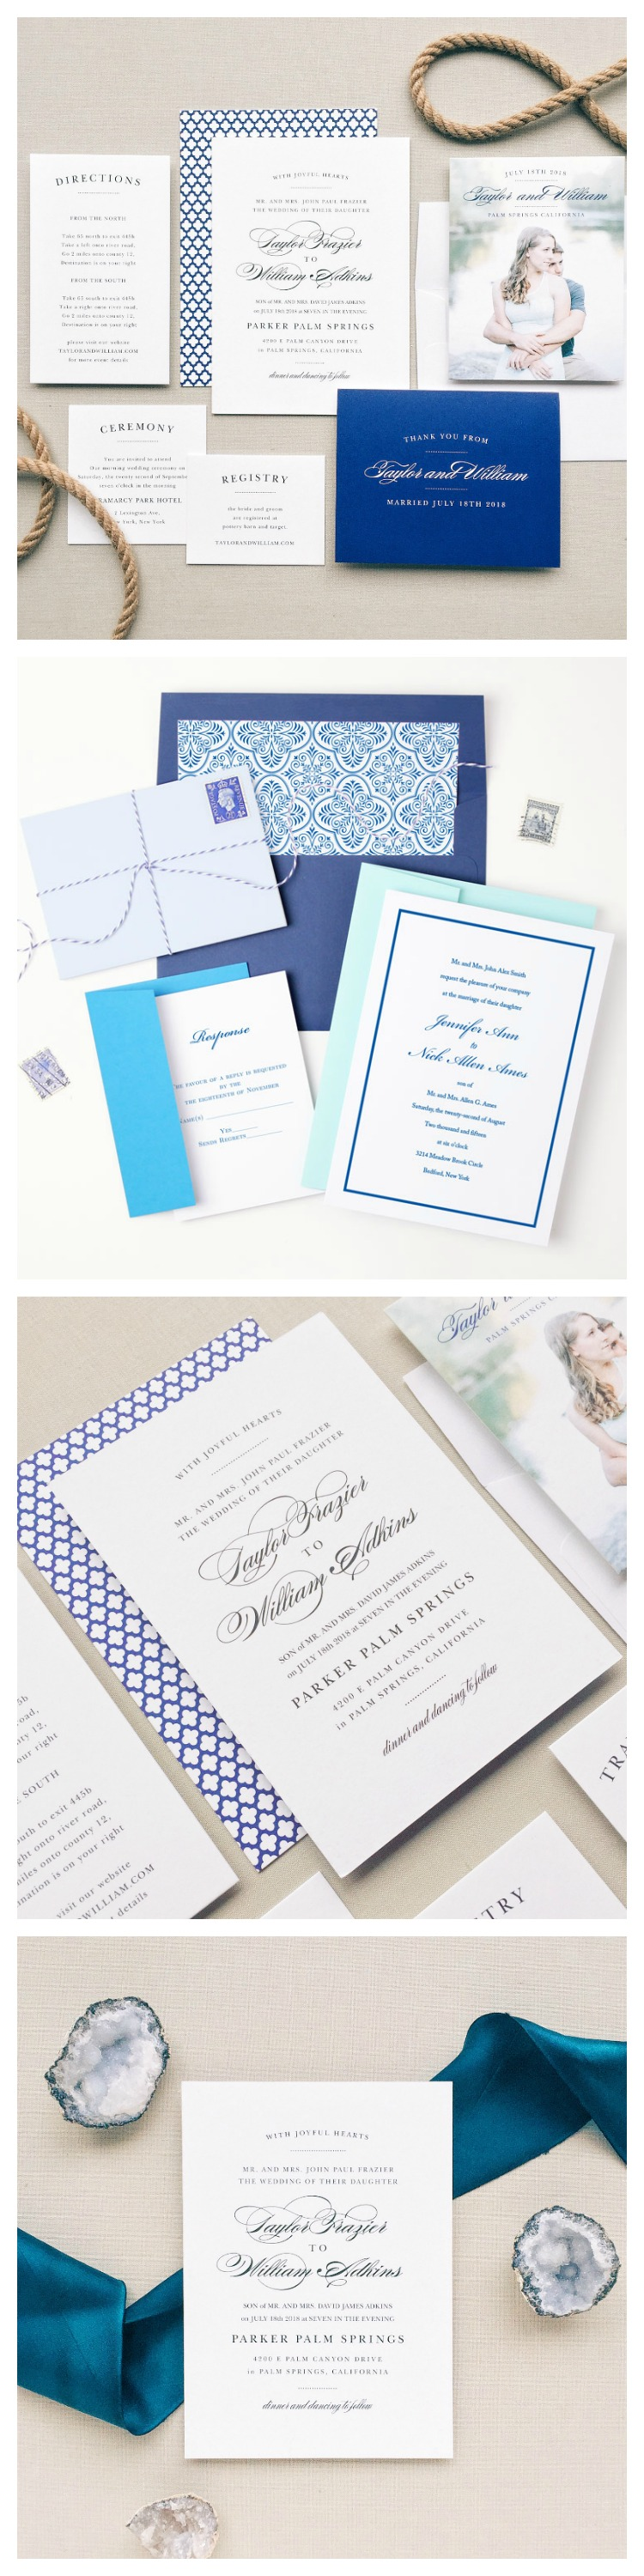 Beauty Inspired Wedding Stationery | Confessions of a ...